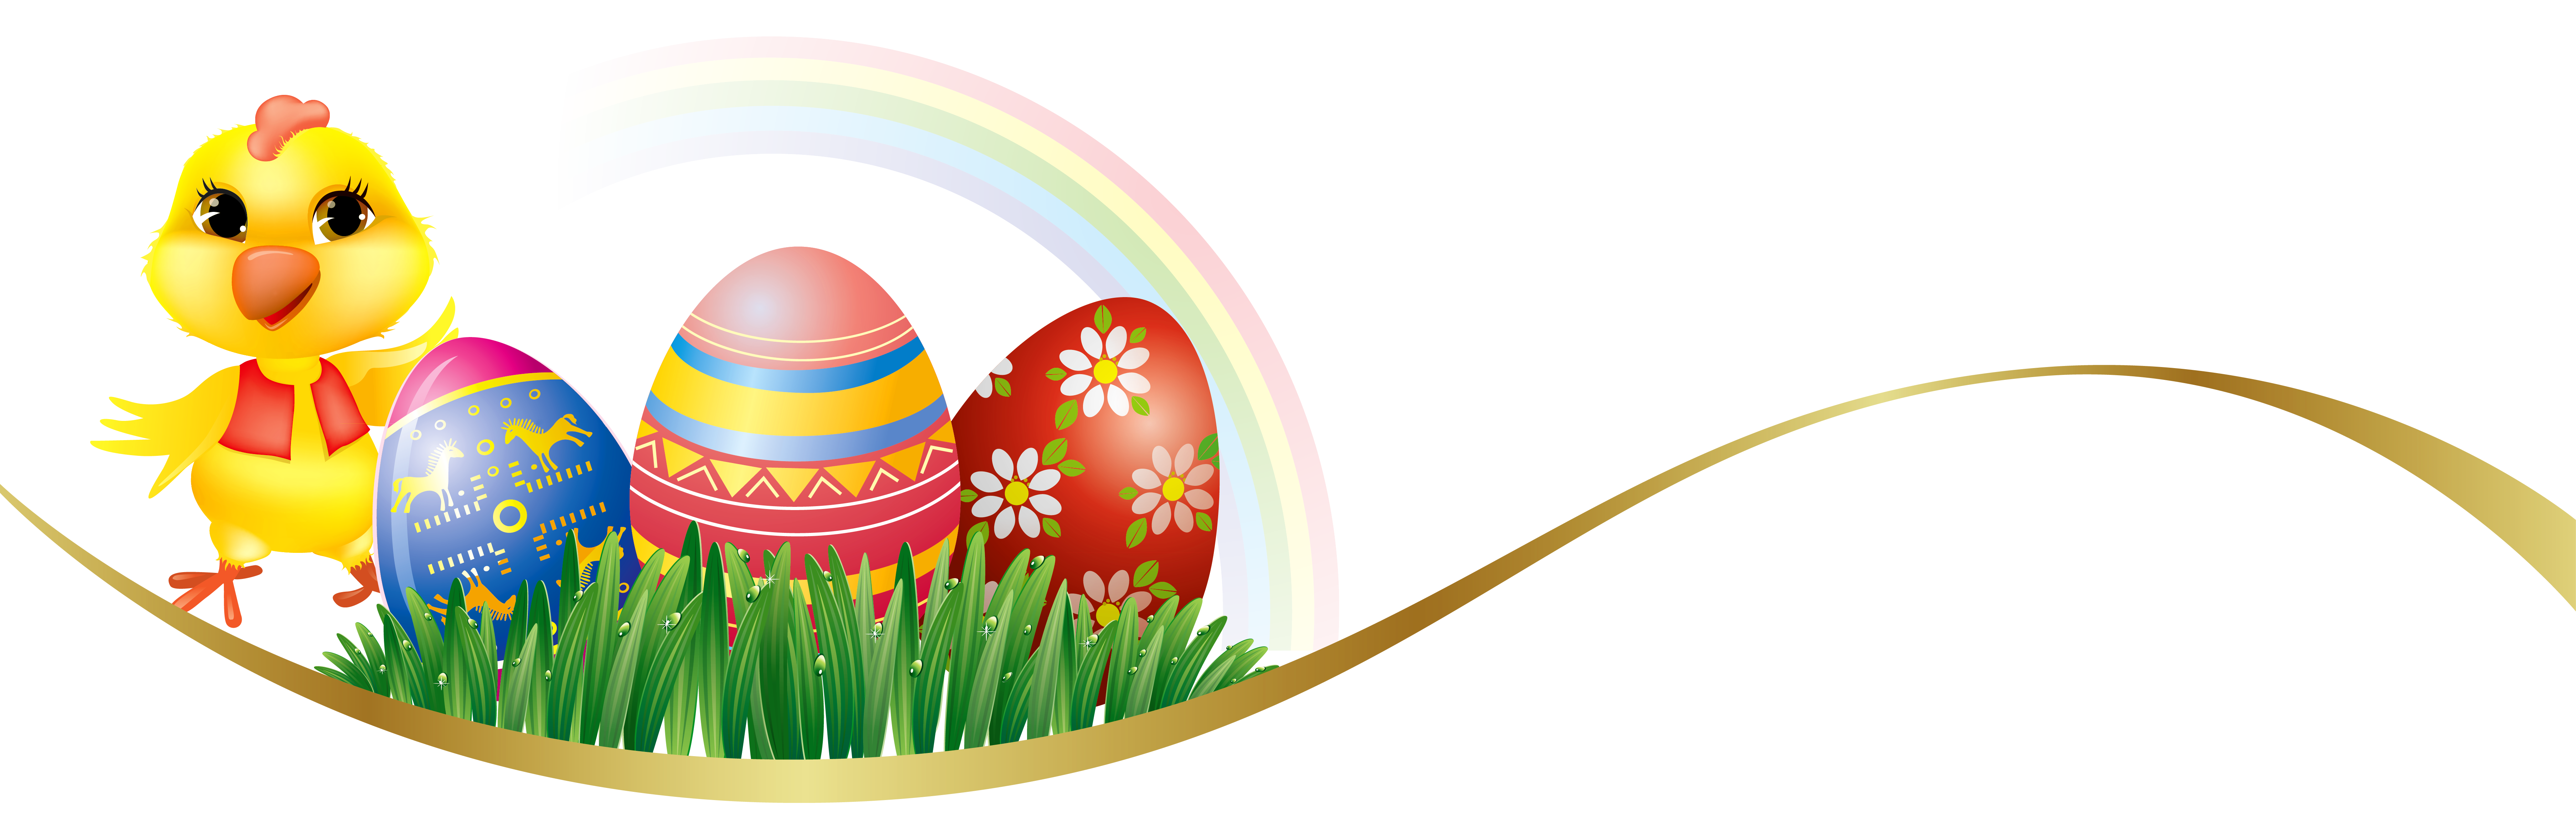 Easter Deco with Eggs and Chicken PNG Clipart Picture.